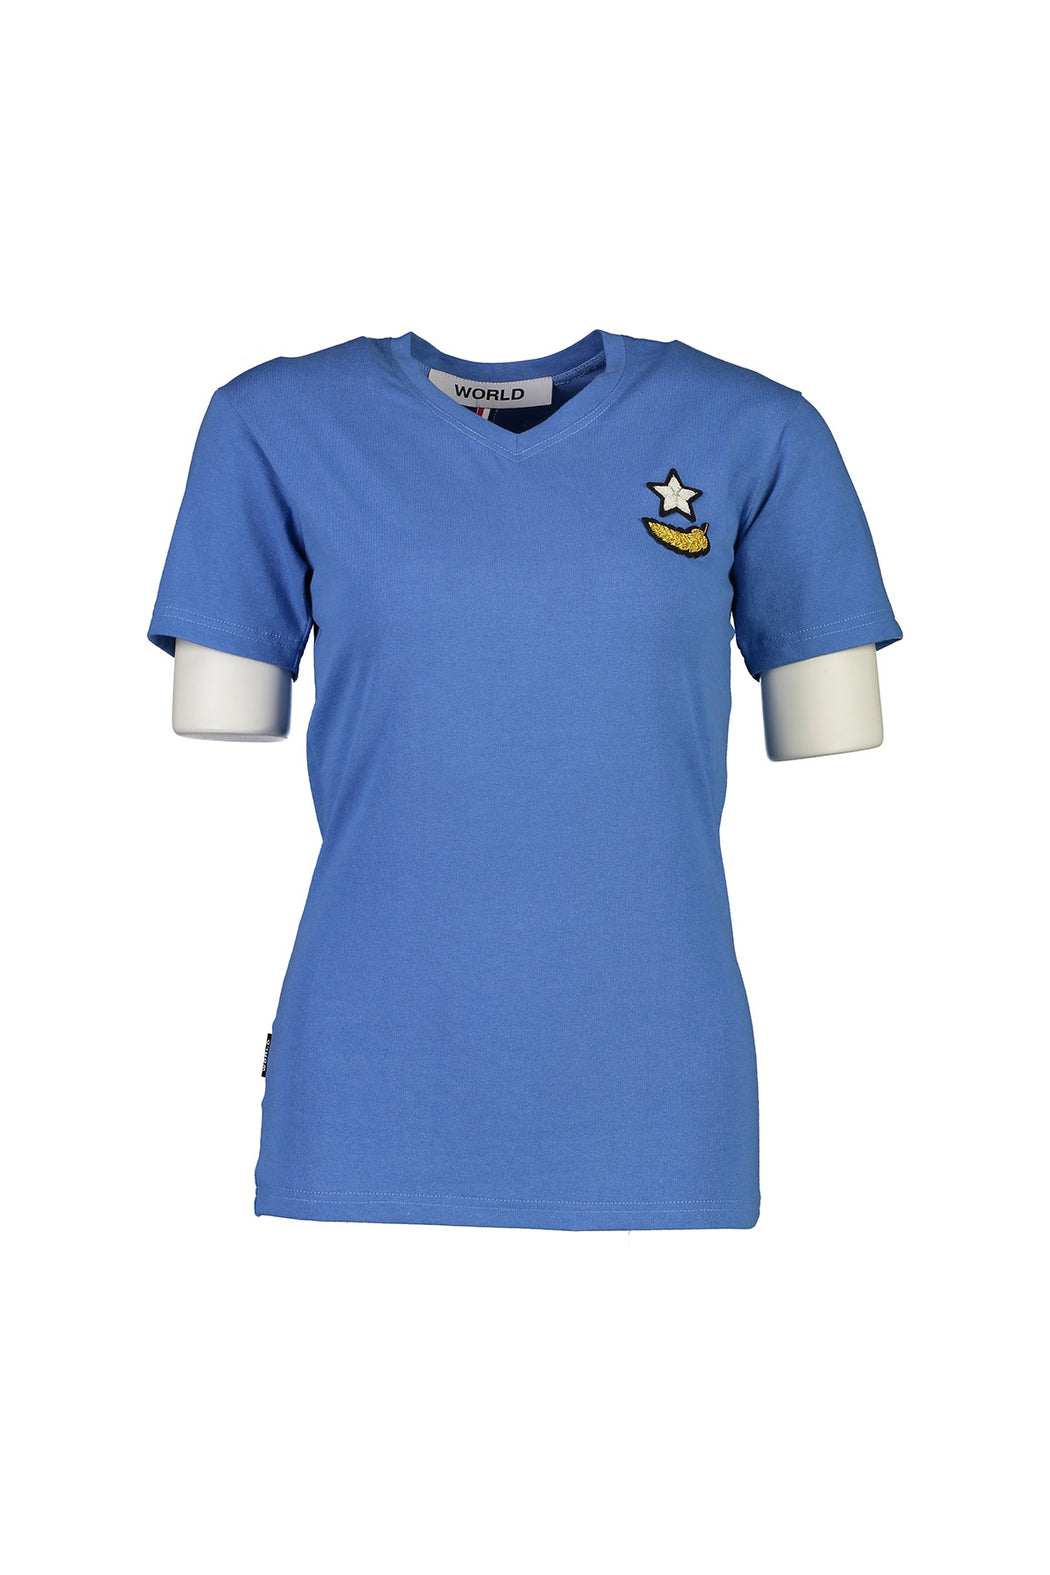 WORLD 4527 Amiss V-neck T (Unisex) Blue